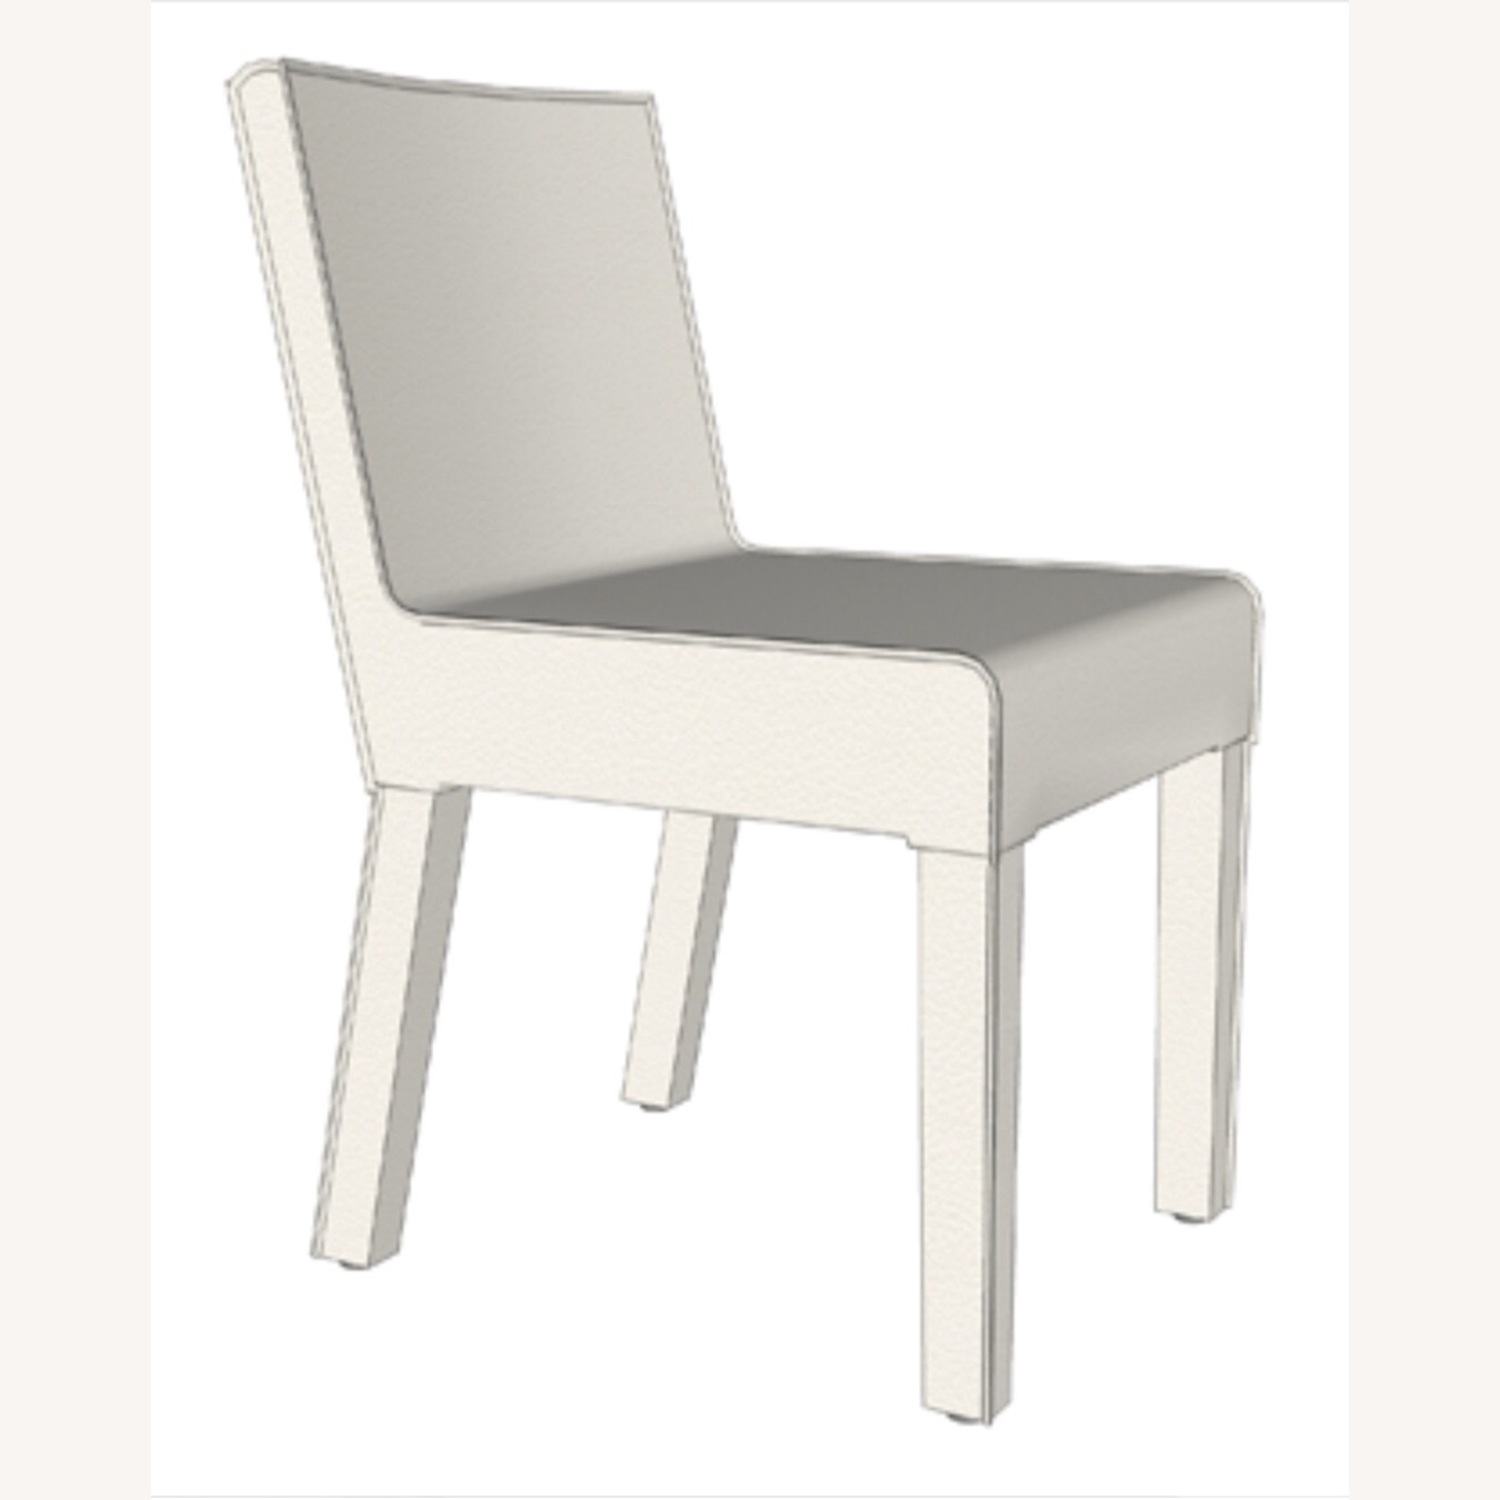 4 Chalk Leather Dining Chairs - image-4